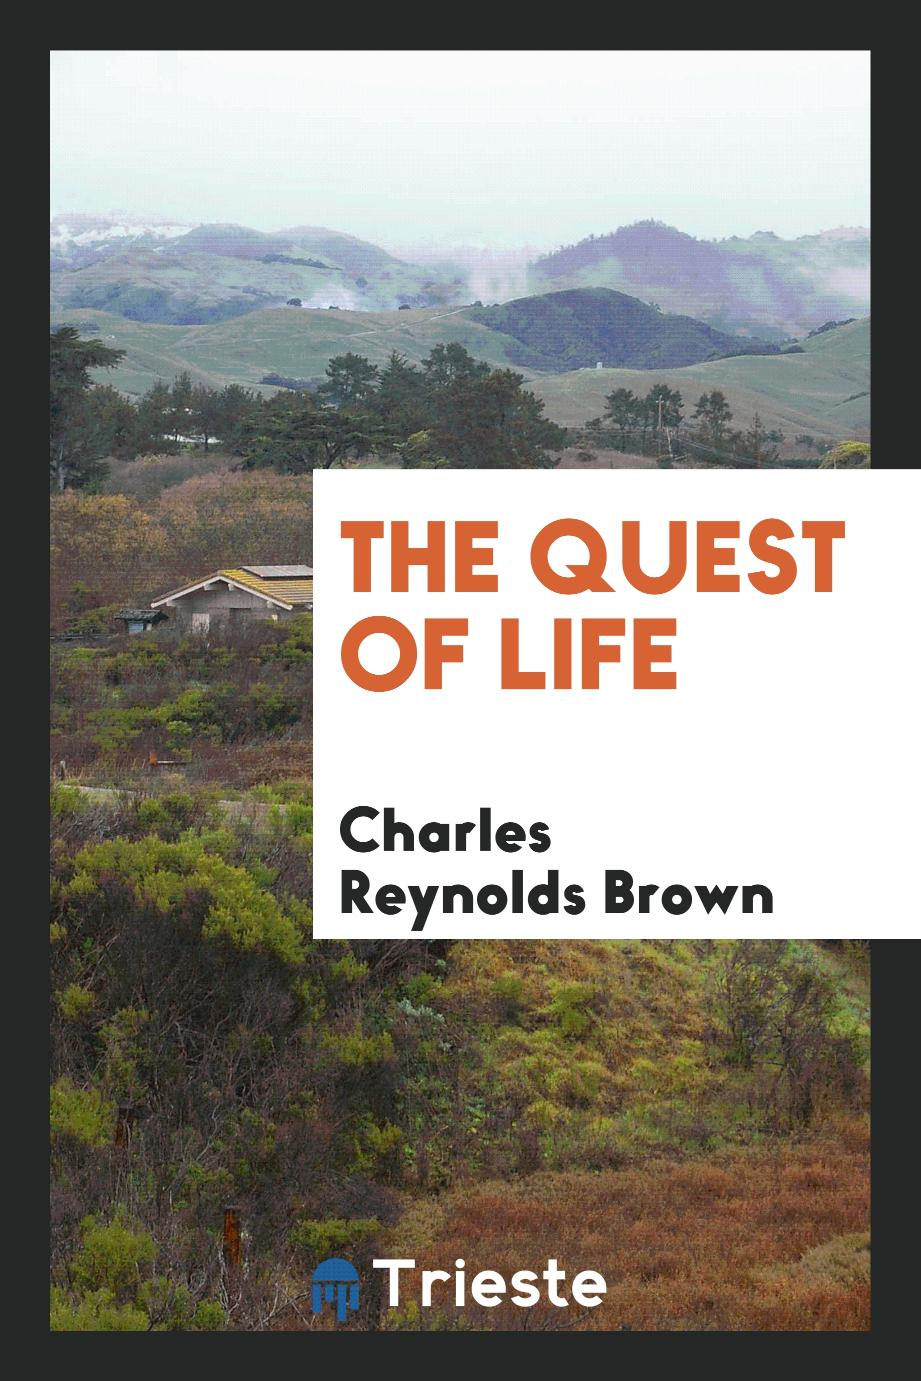 The quest of life